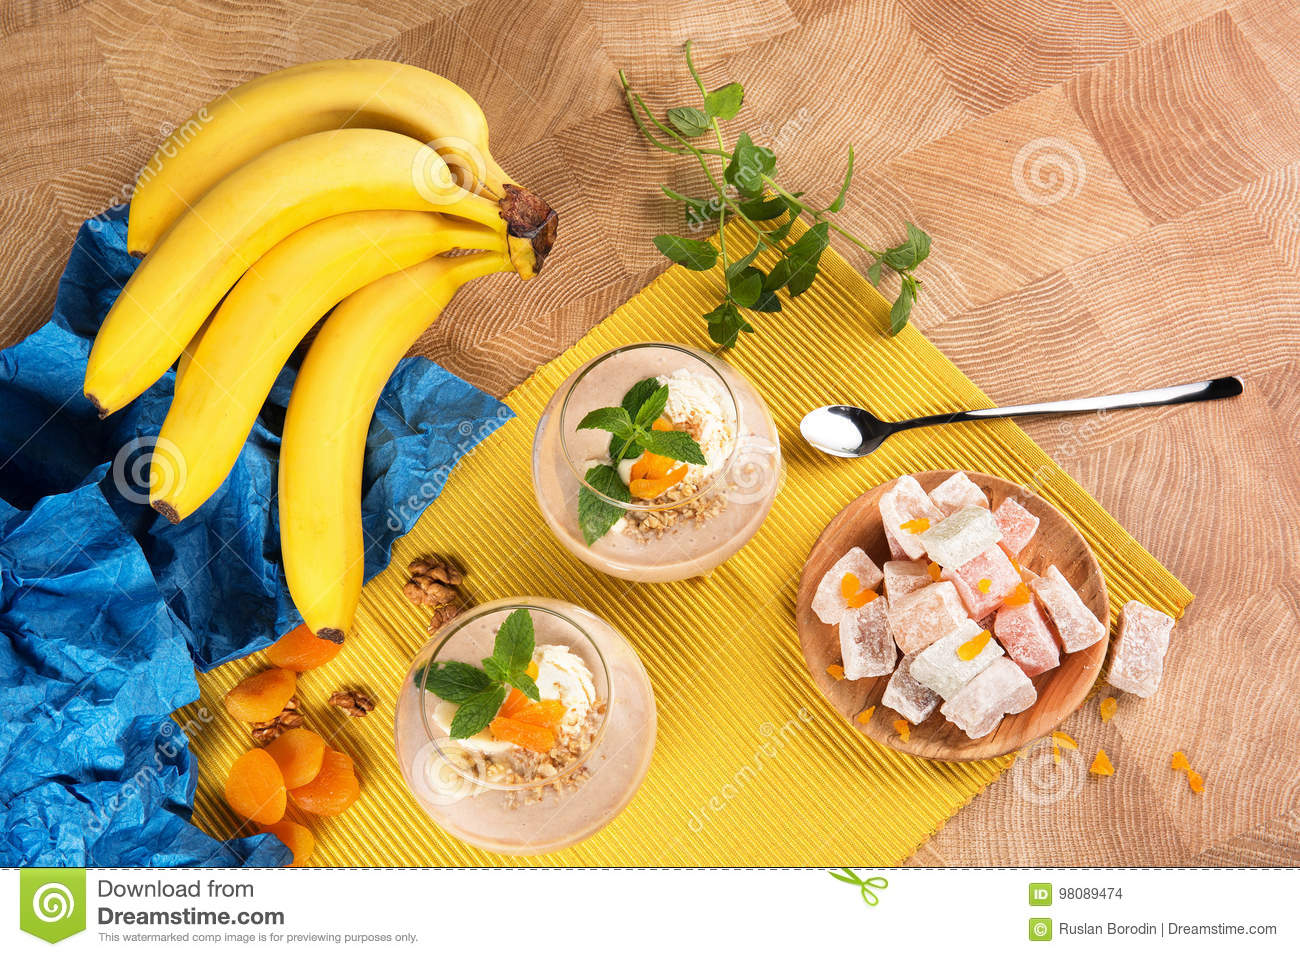 a colorful set of bananas turkish delight dried apricots and